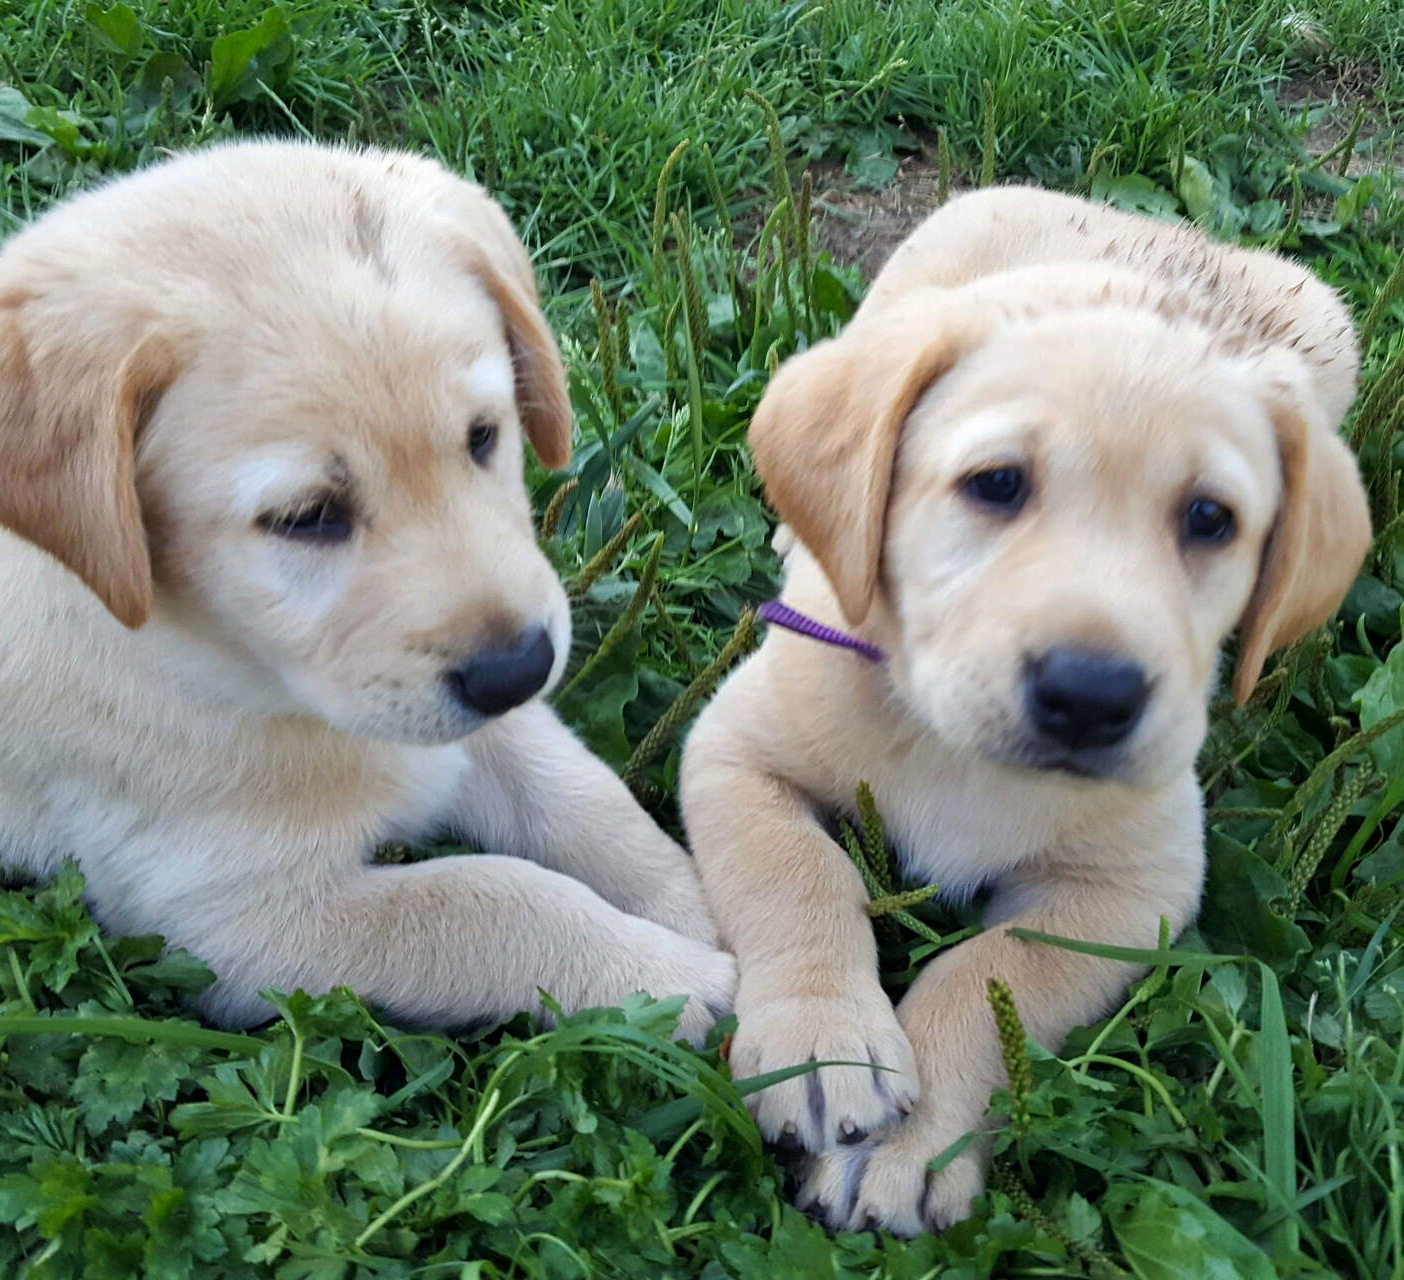 Yellow labrador puppies-2019-11.jpg